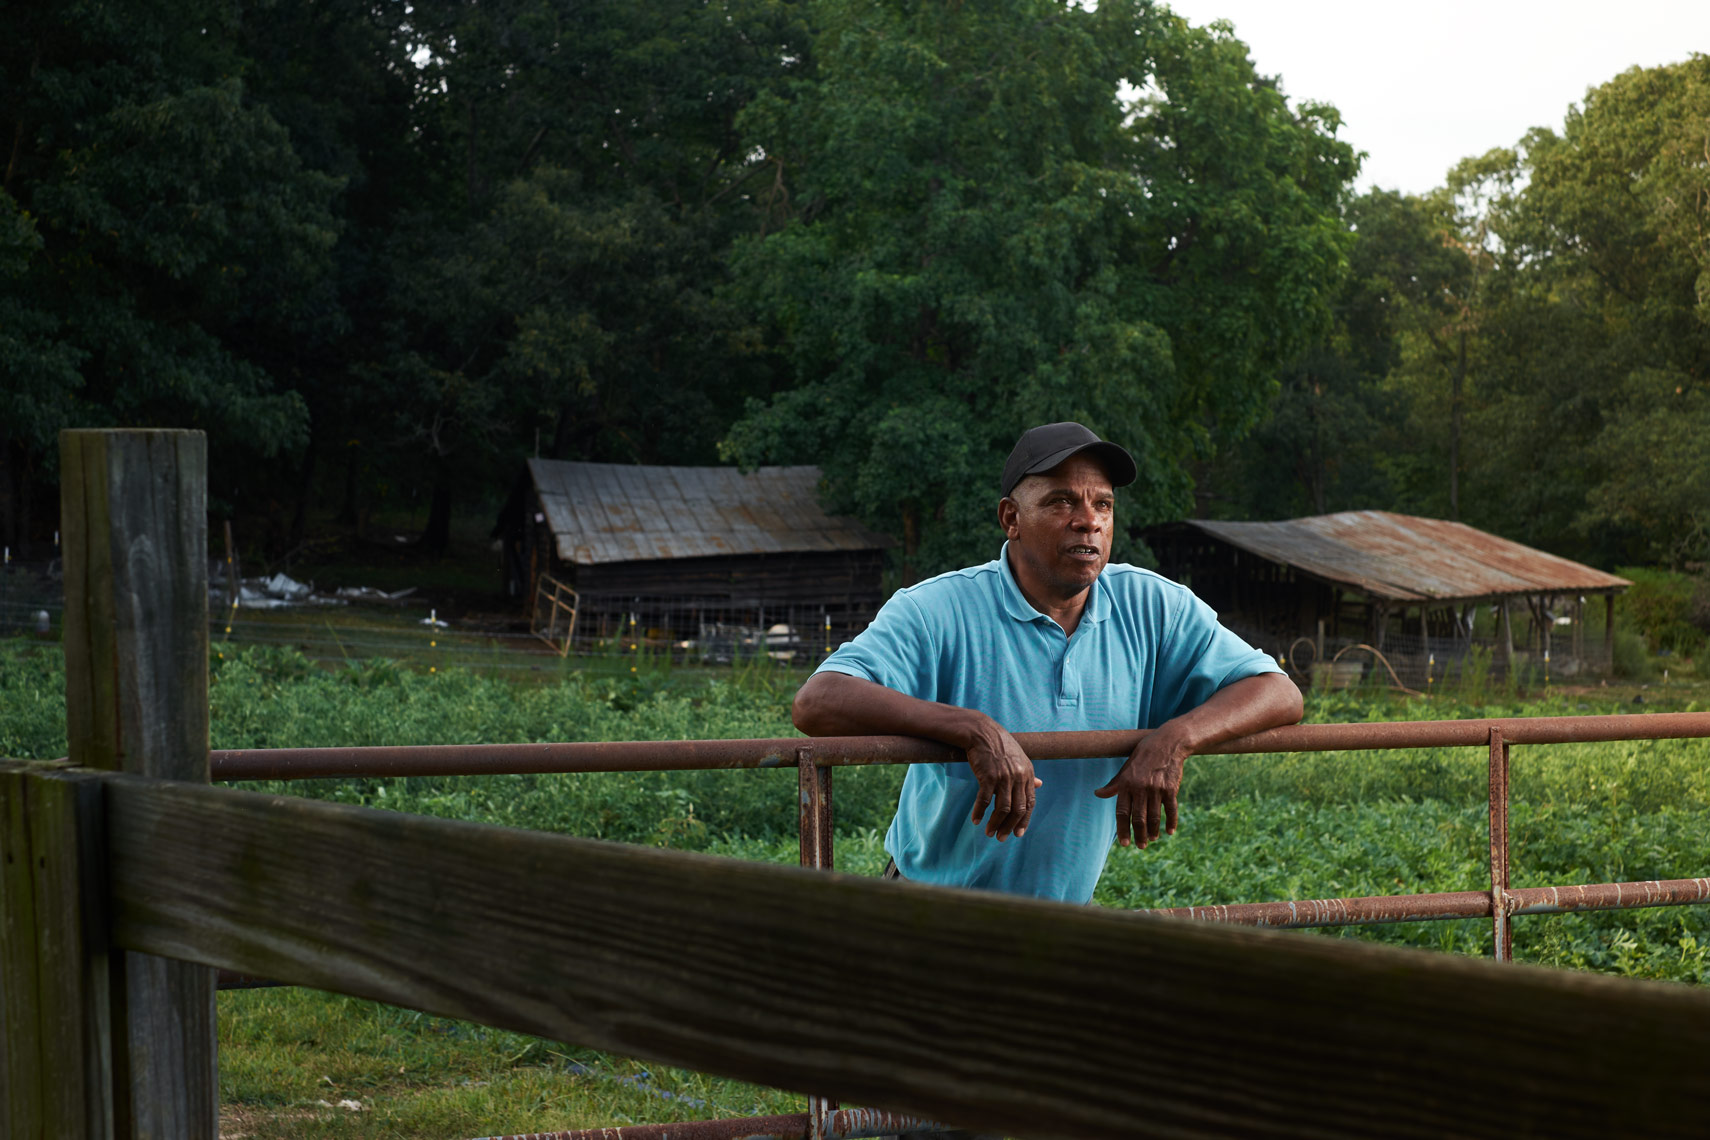 A Taste of Spartanburg Farmer shot by Ian Curcio